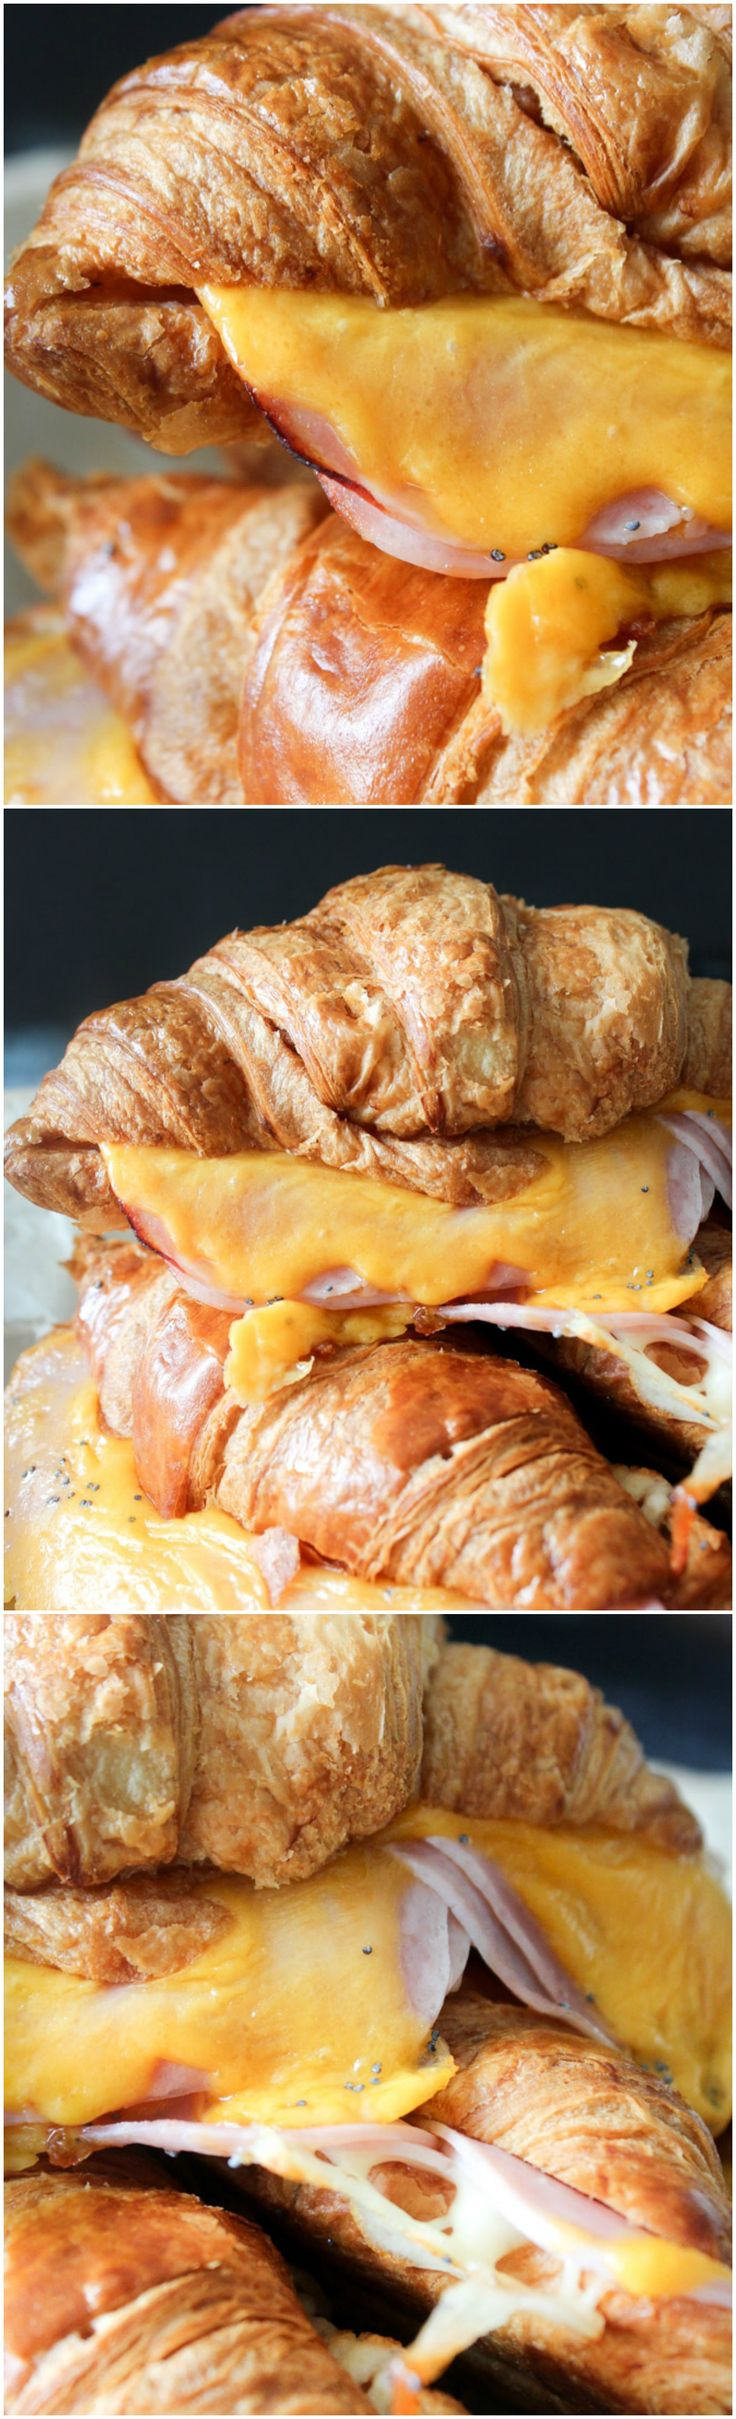 Ham And Cheese Croissant - Poppy Seeds And Honey Croissants - Croissant Recipe - Ham And Cheese - Easy Lunch Recipe - Easy Dinner Recipe - Easy Breakfast